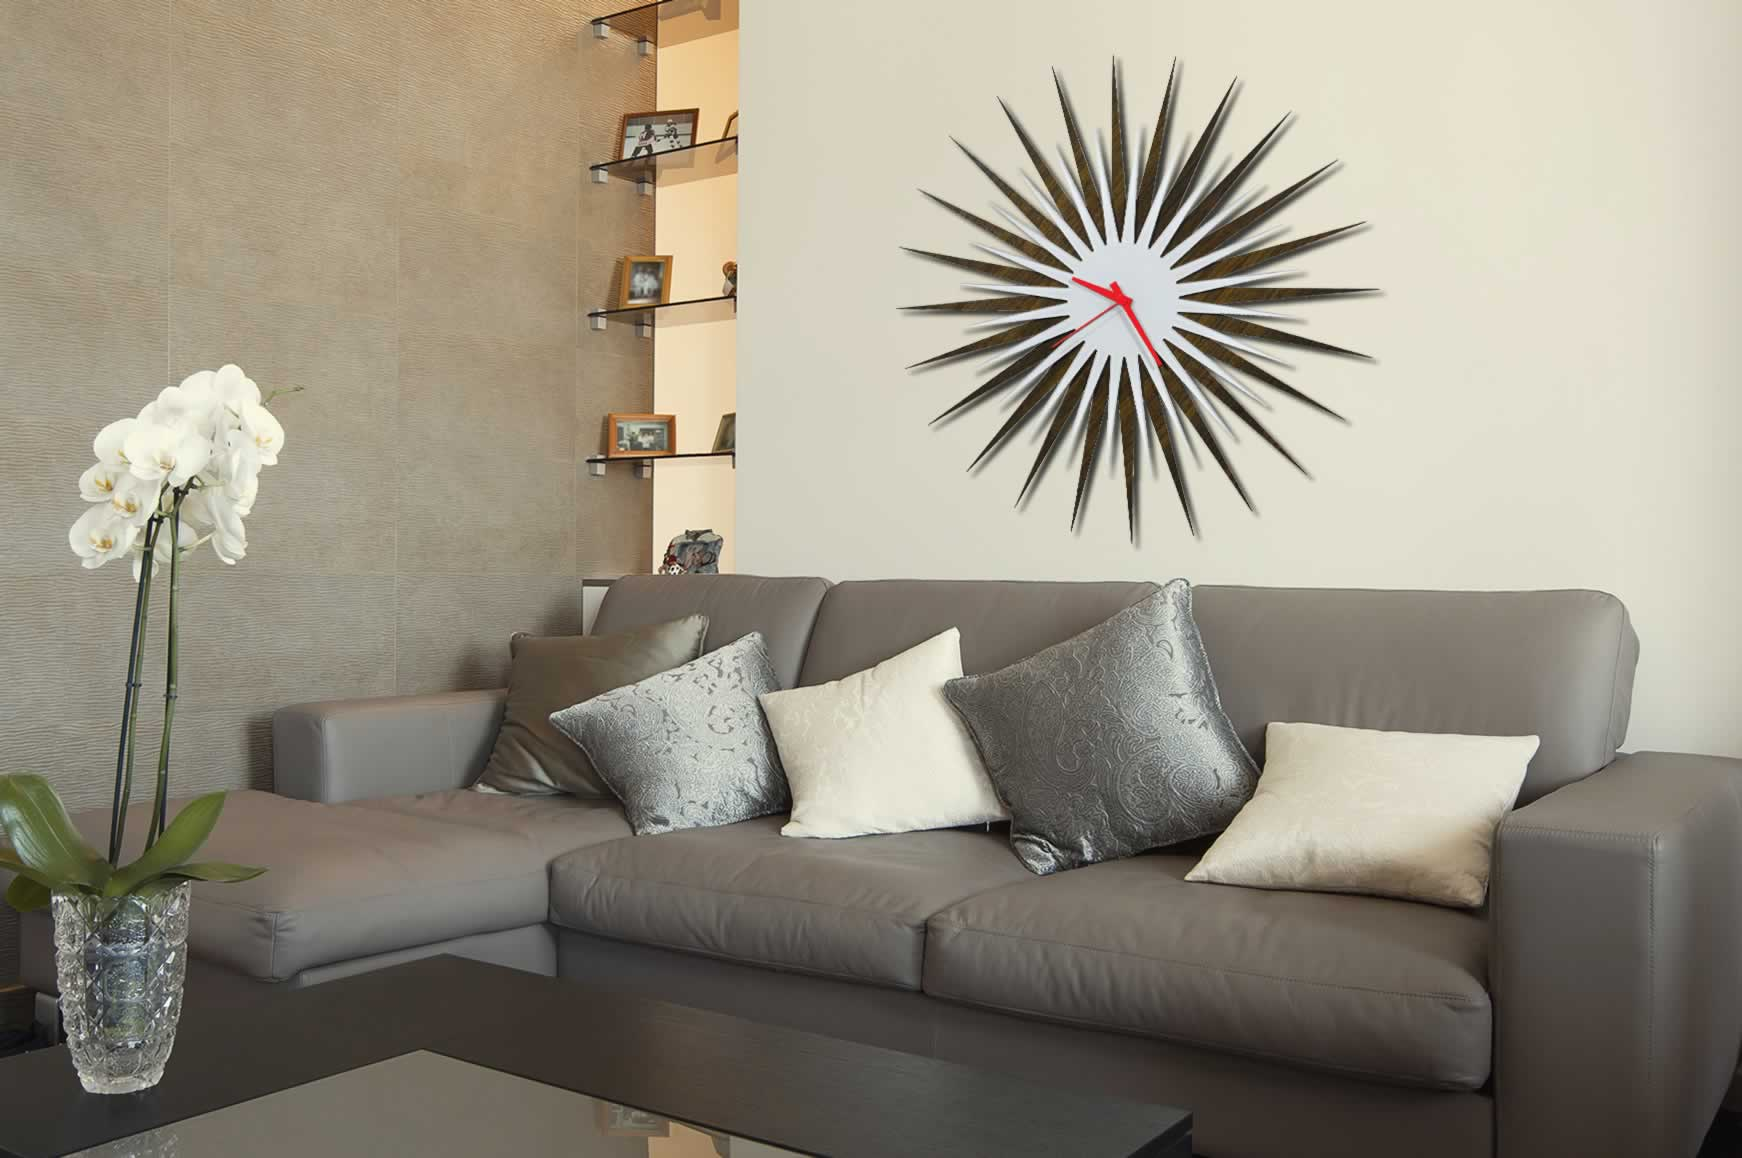 RF Atomic Clock - Walnut White/Red Starburst - Lifestyle Image